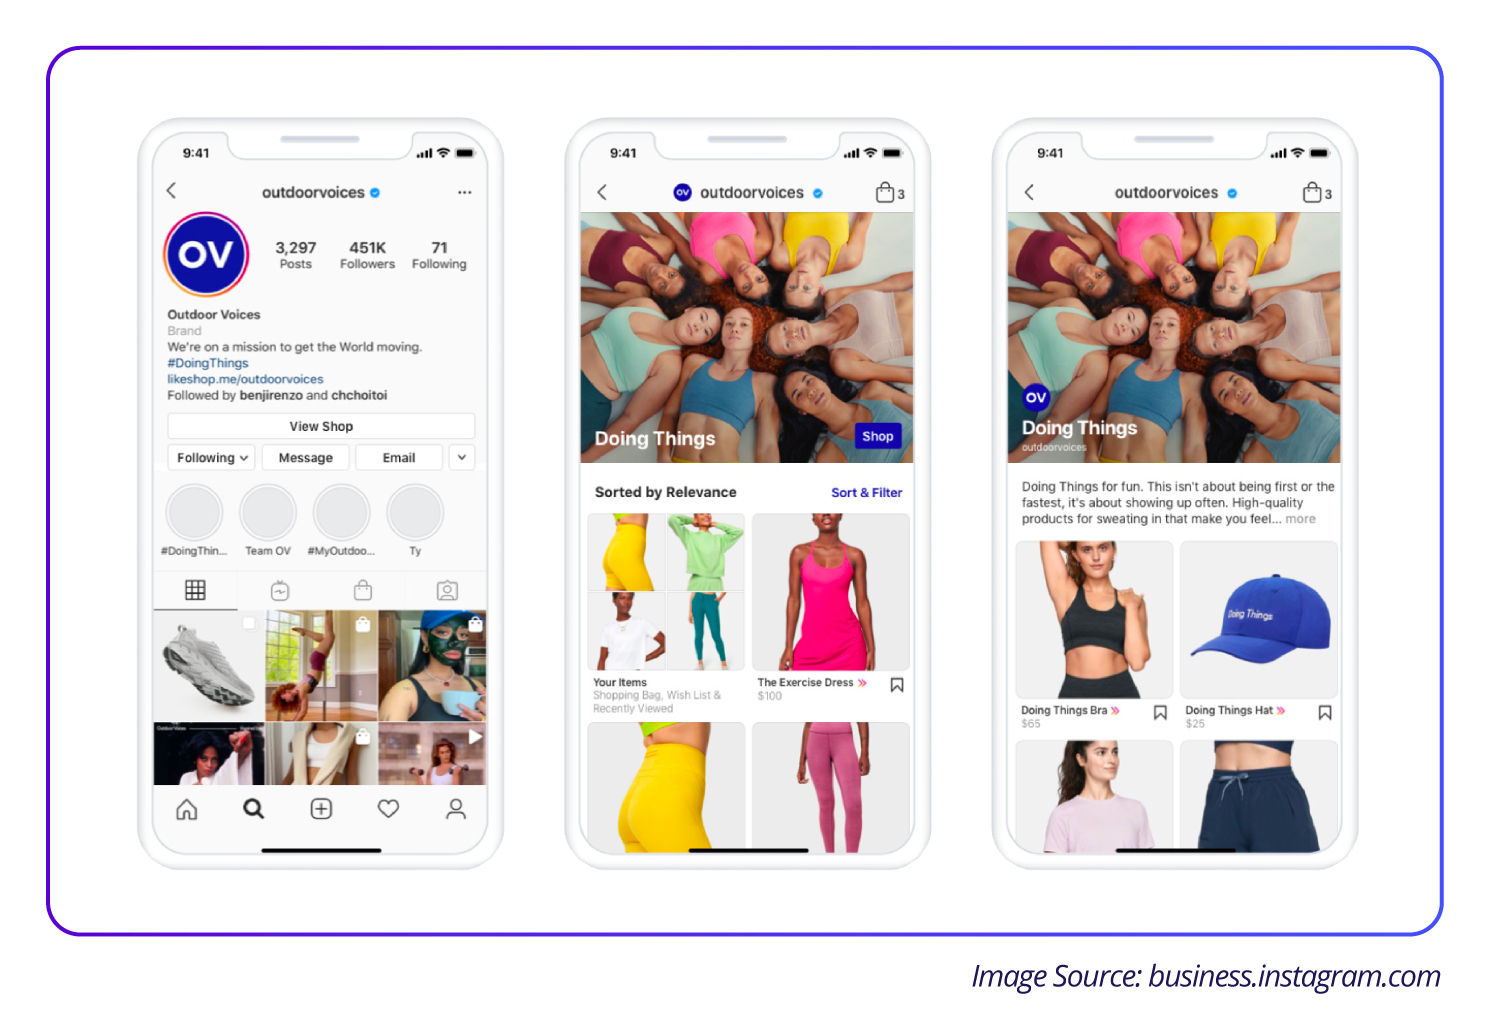 Image contains different ways to showcase product via Instagram Shop